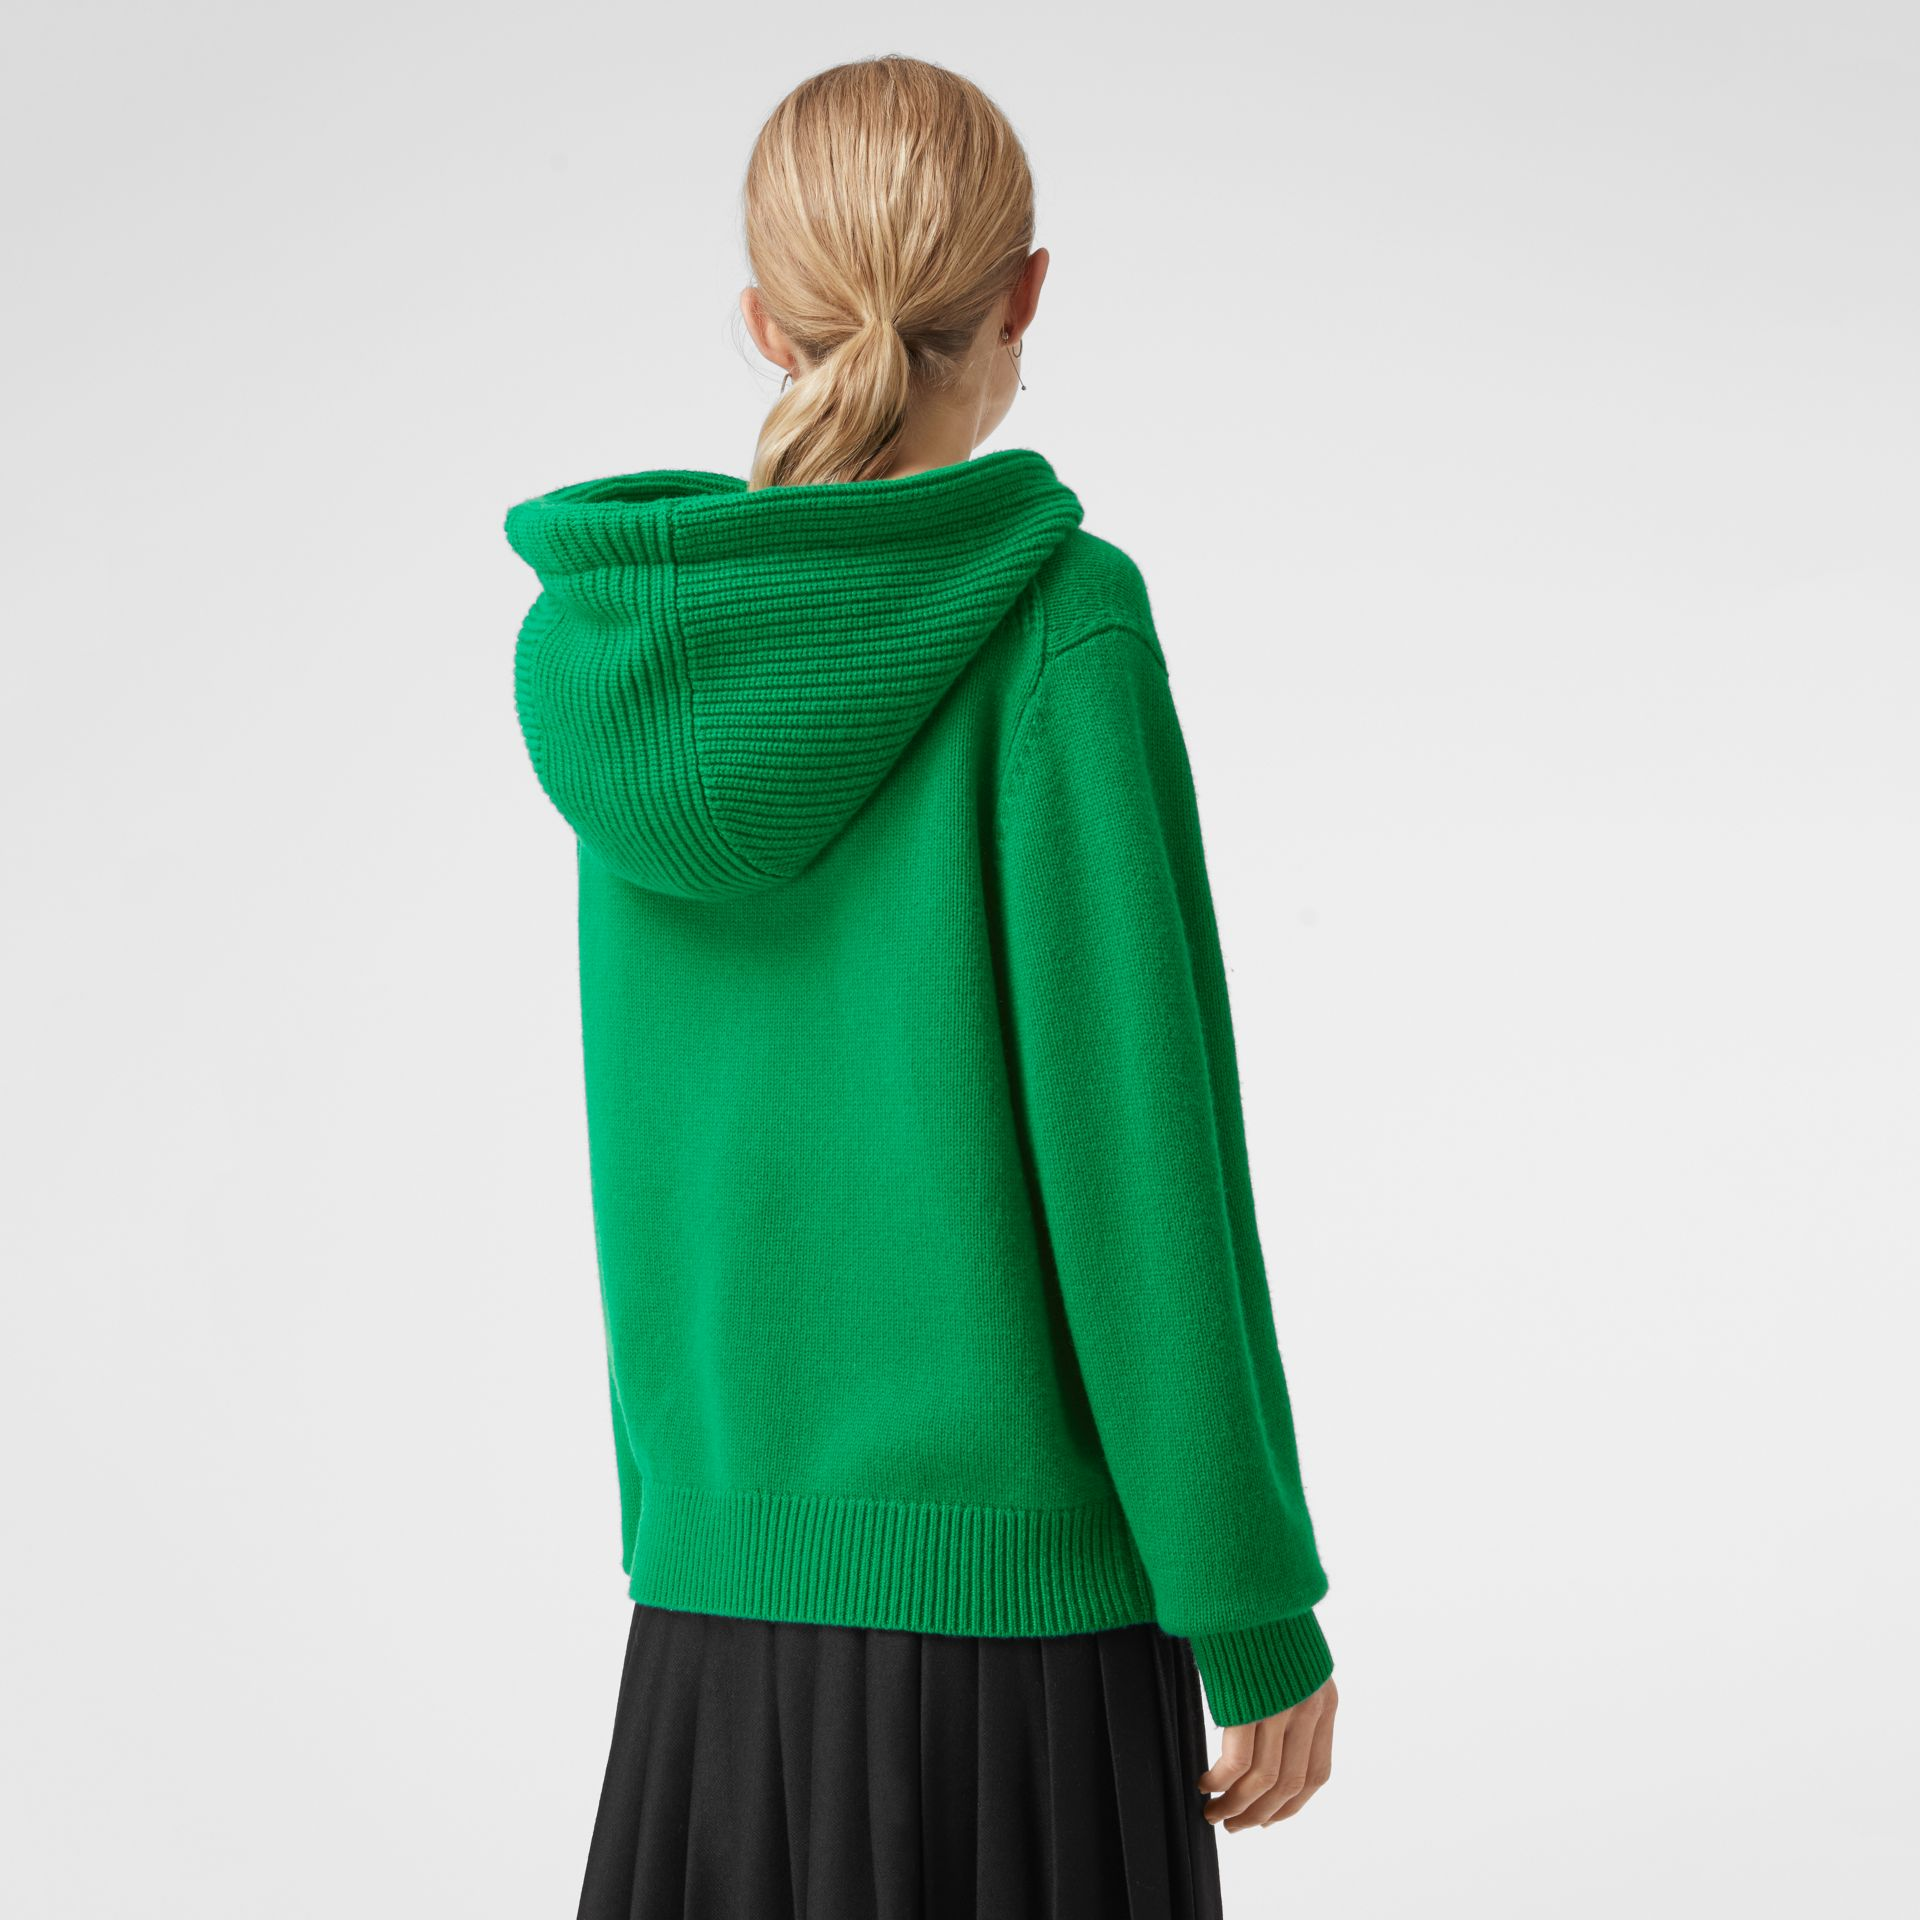 Embroidered Archive Logo Cashmere Hooded Top in Vibrant Green - Women | Burberry United Kingdom - gallery image 2